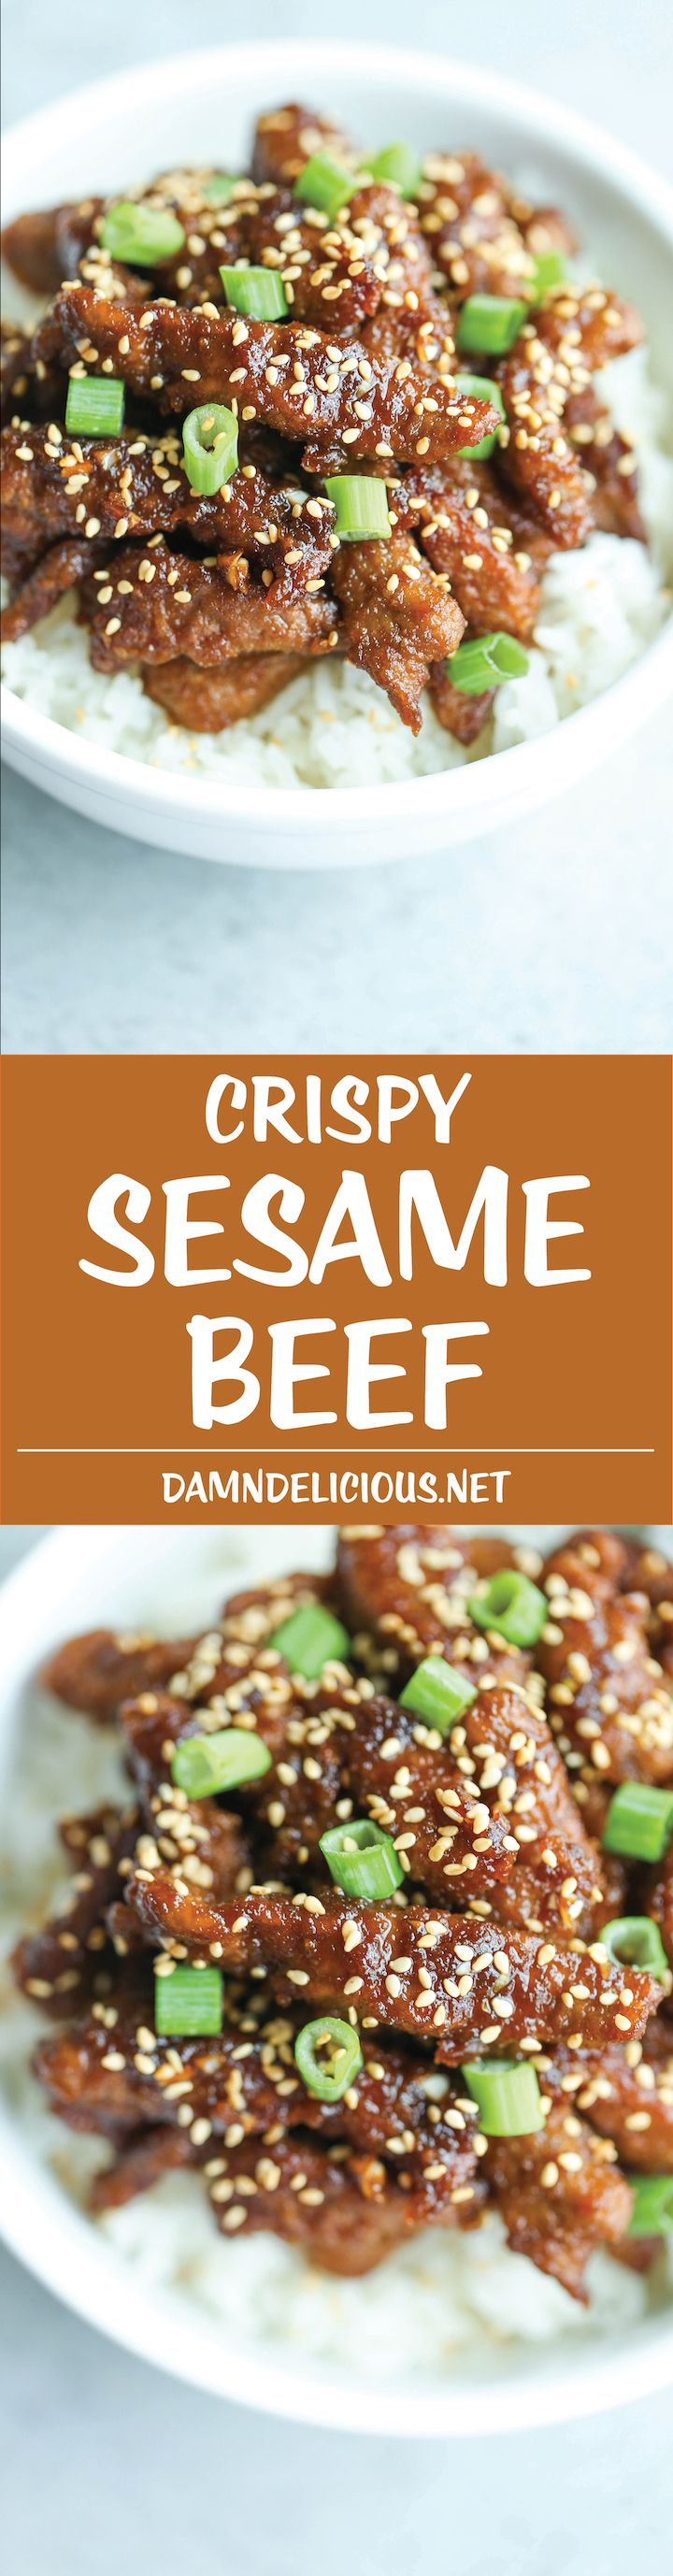 Crispy Sesame Beef - Restaurant-quality, amazingly crispy beef made in just 30 min with less oil - you won't even be able to tell the difference!